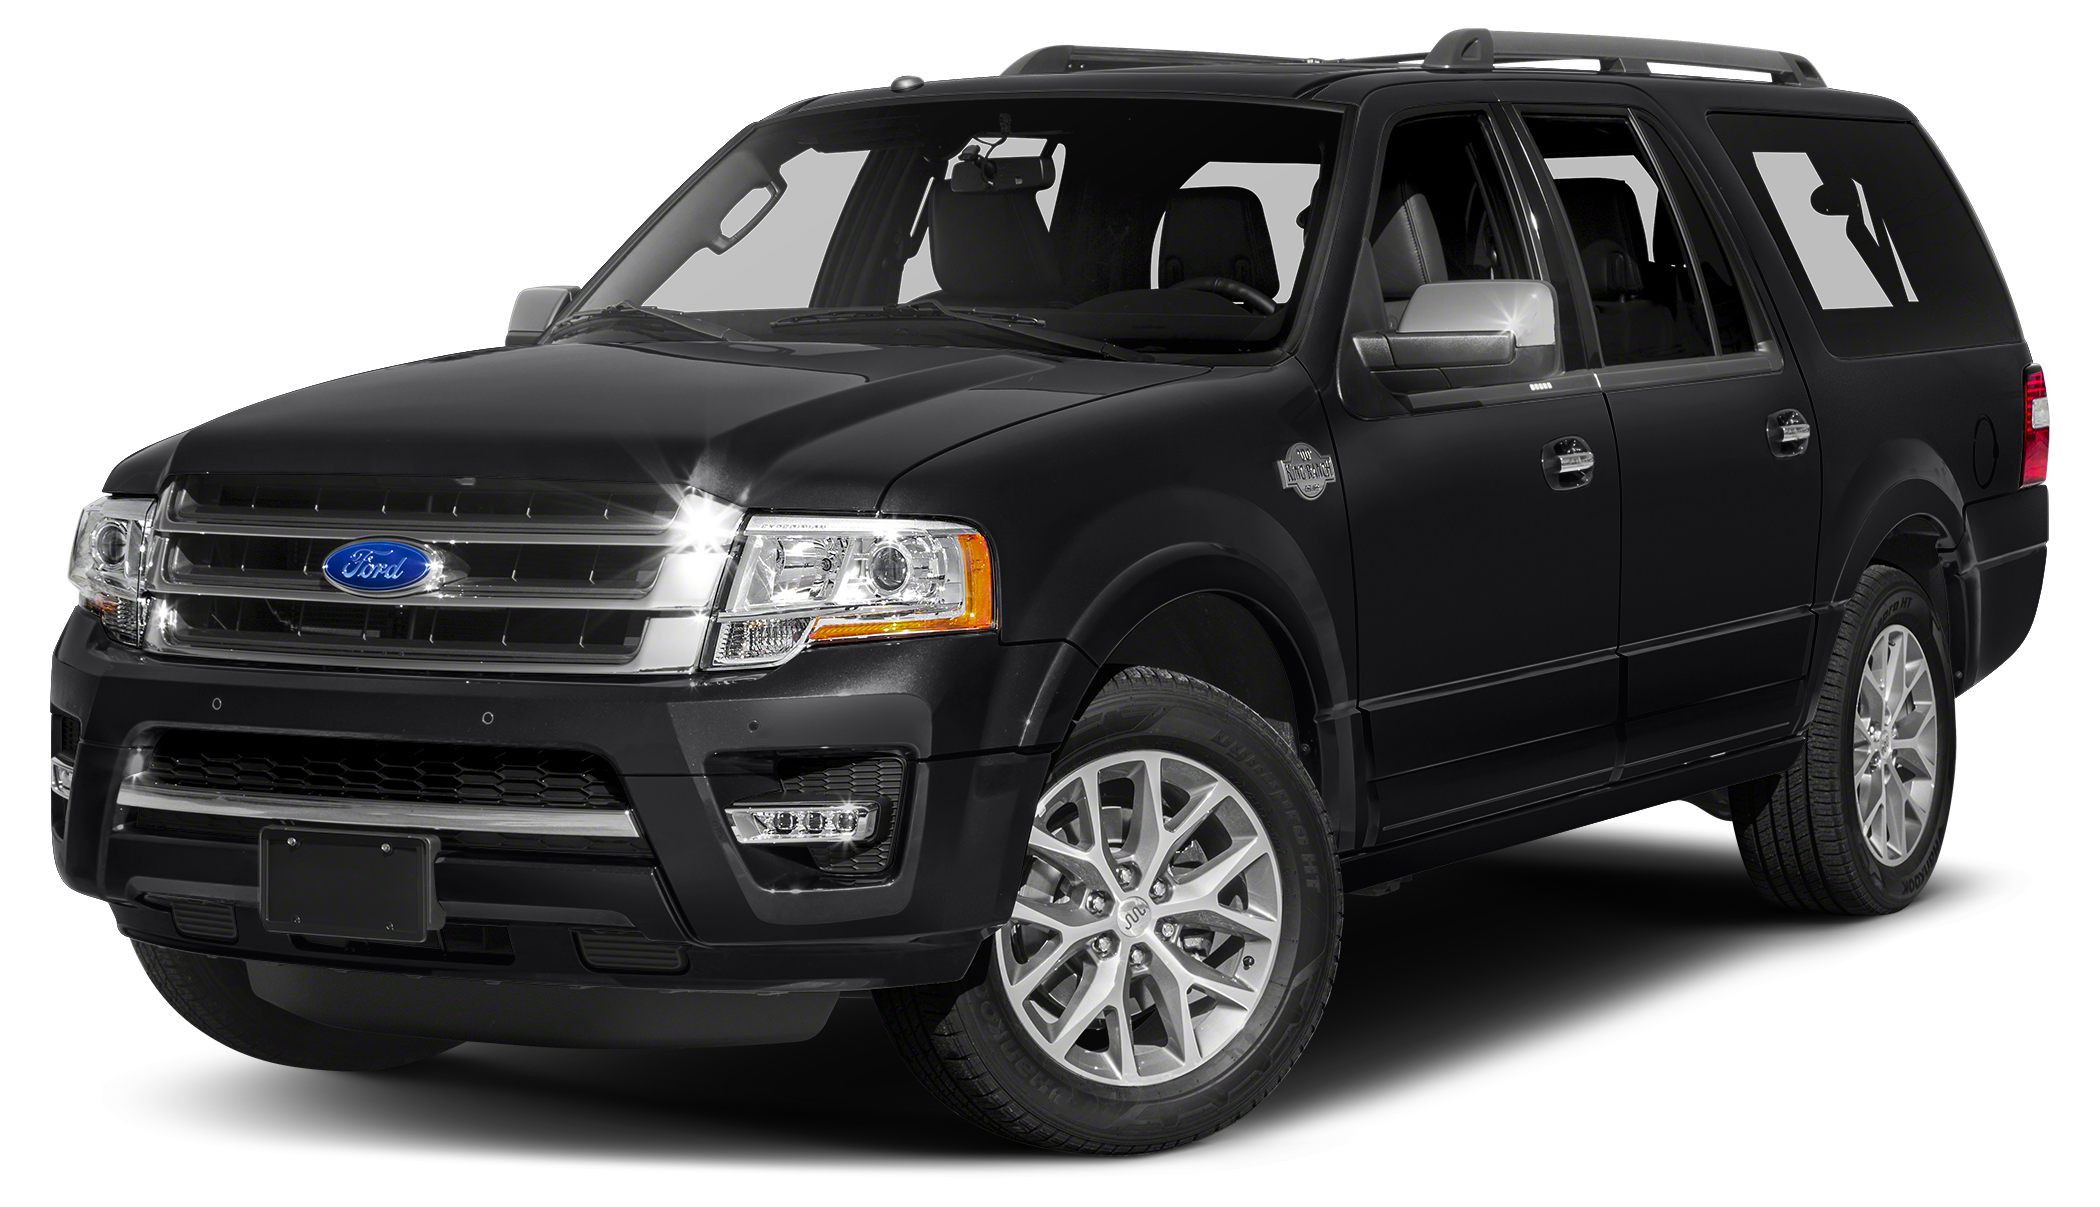 2017 Ford Expedition EL King Ranch The Ford Expedition features a new aggressive front end creates